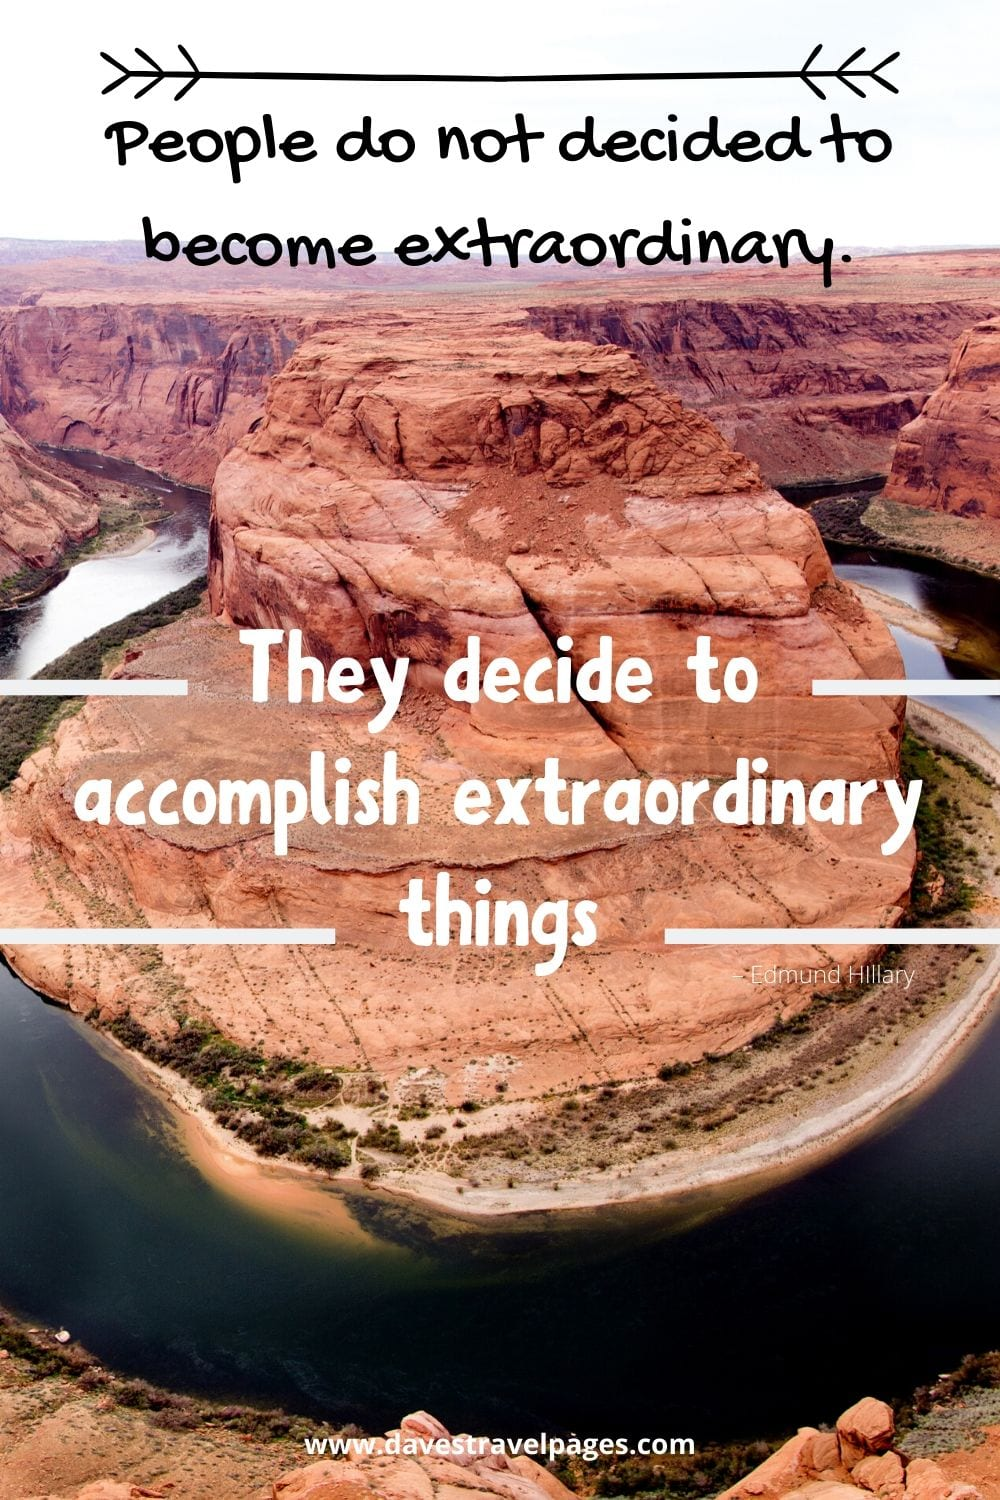 """Quotes about adventure and exploration: """"People do not decided to become extraordinary. They decide to accomplish extraordinary things"""" – Edmund HIllary."""